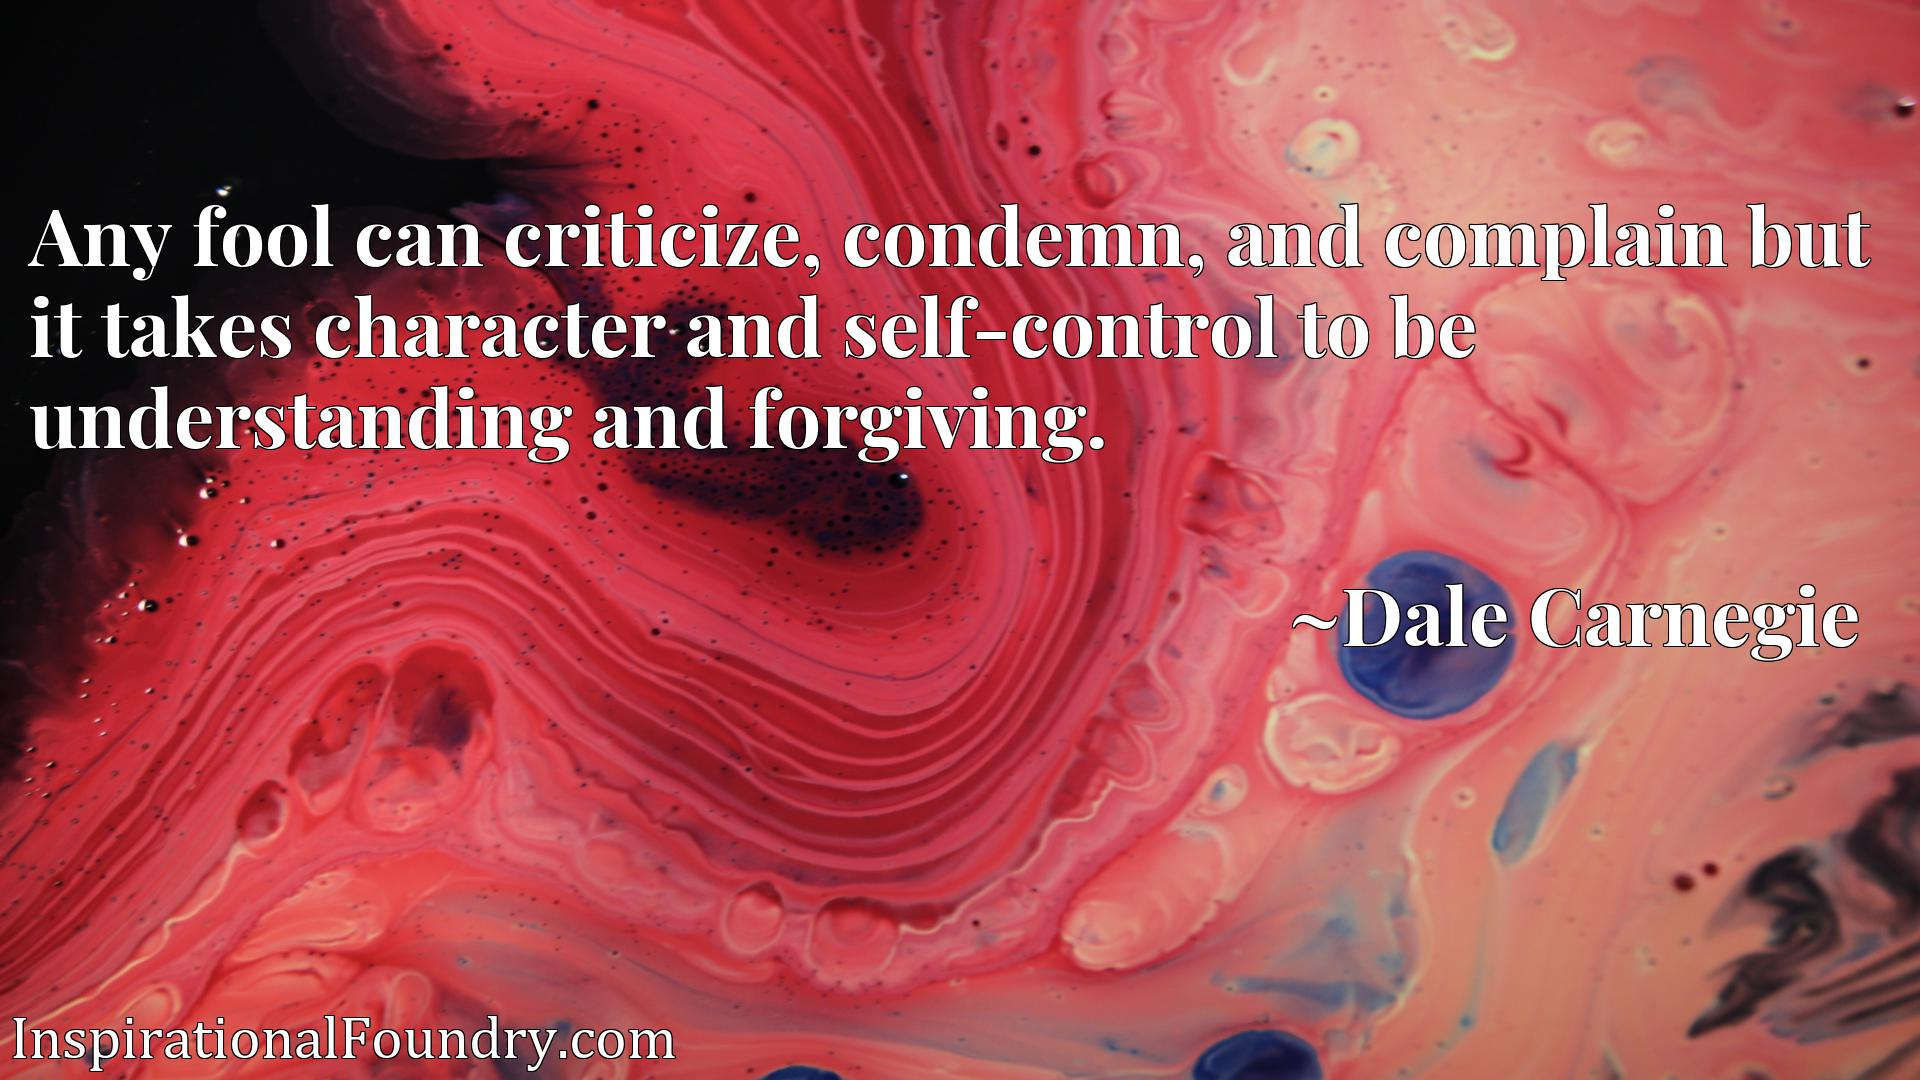 Any fool can criticize, condemn, and complain but it takes character and self-control to be understanding and forgiving.